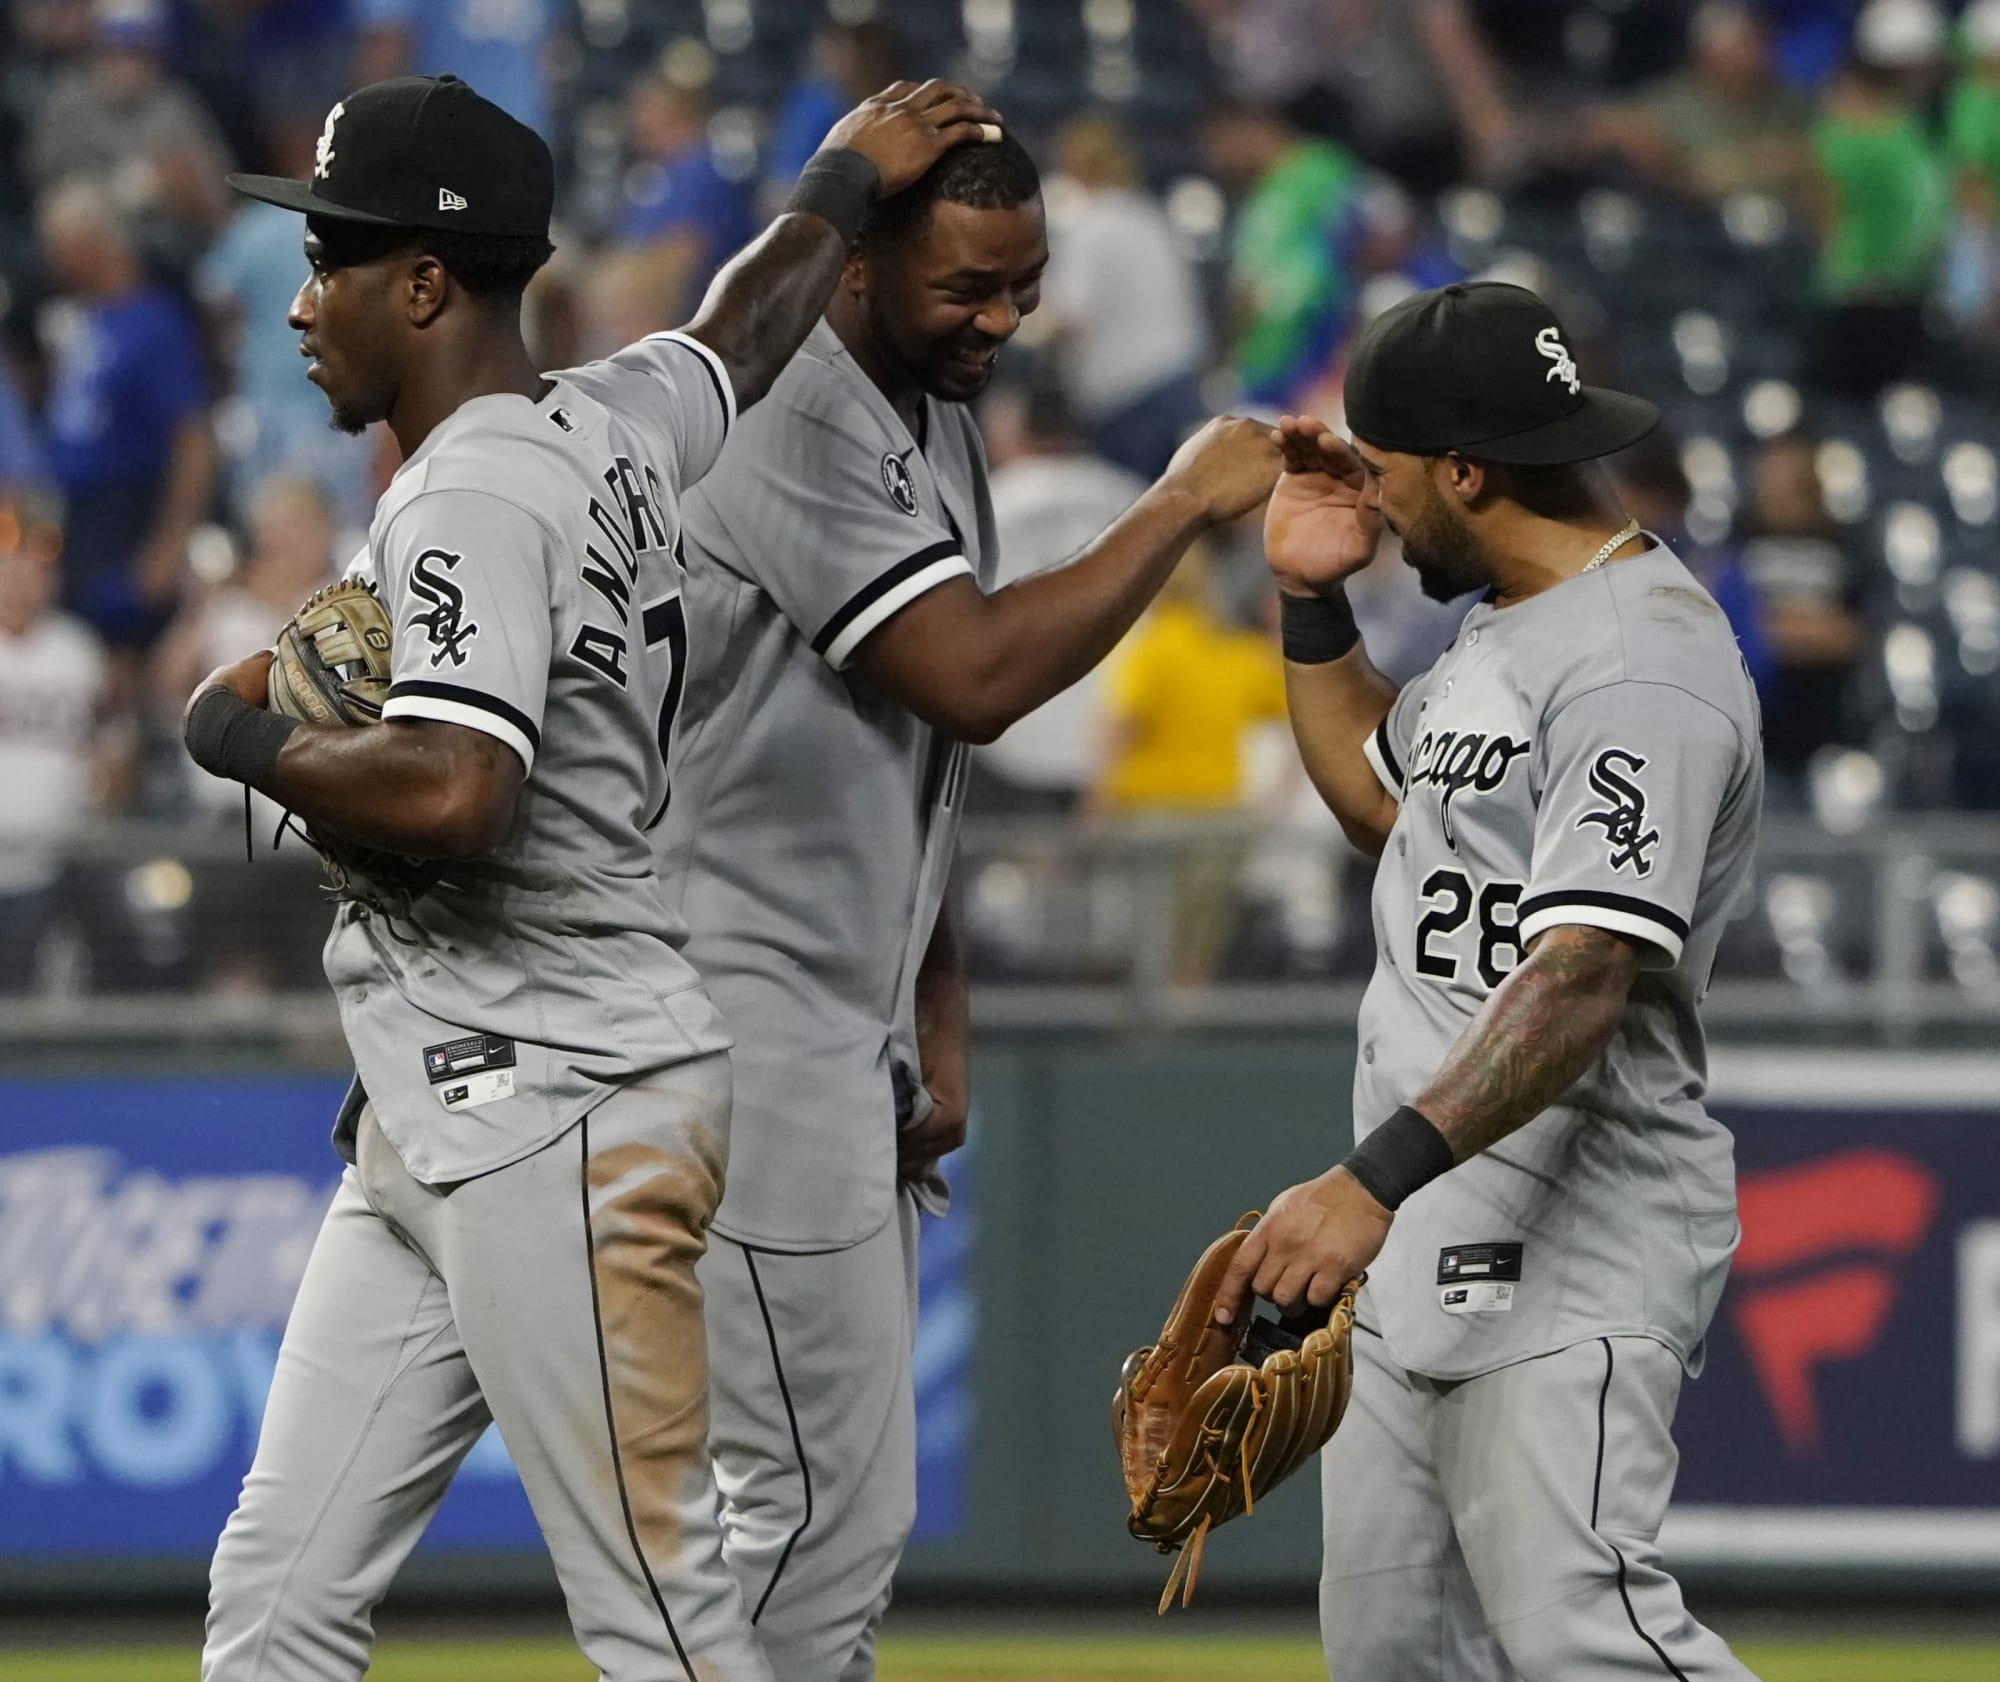 MLB Twitter in awe of Eloy Jimenez's insane return to the White Sox lineup